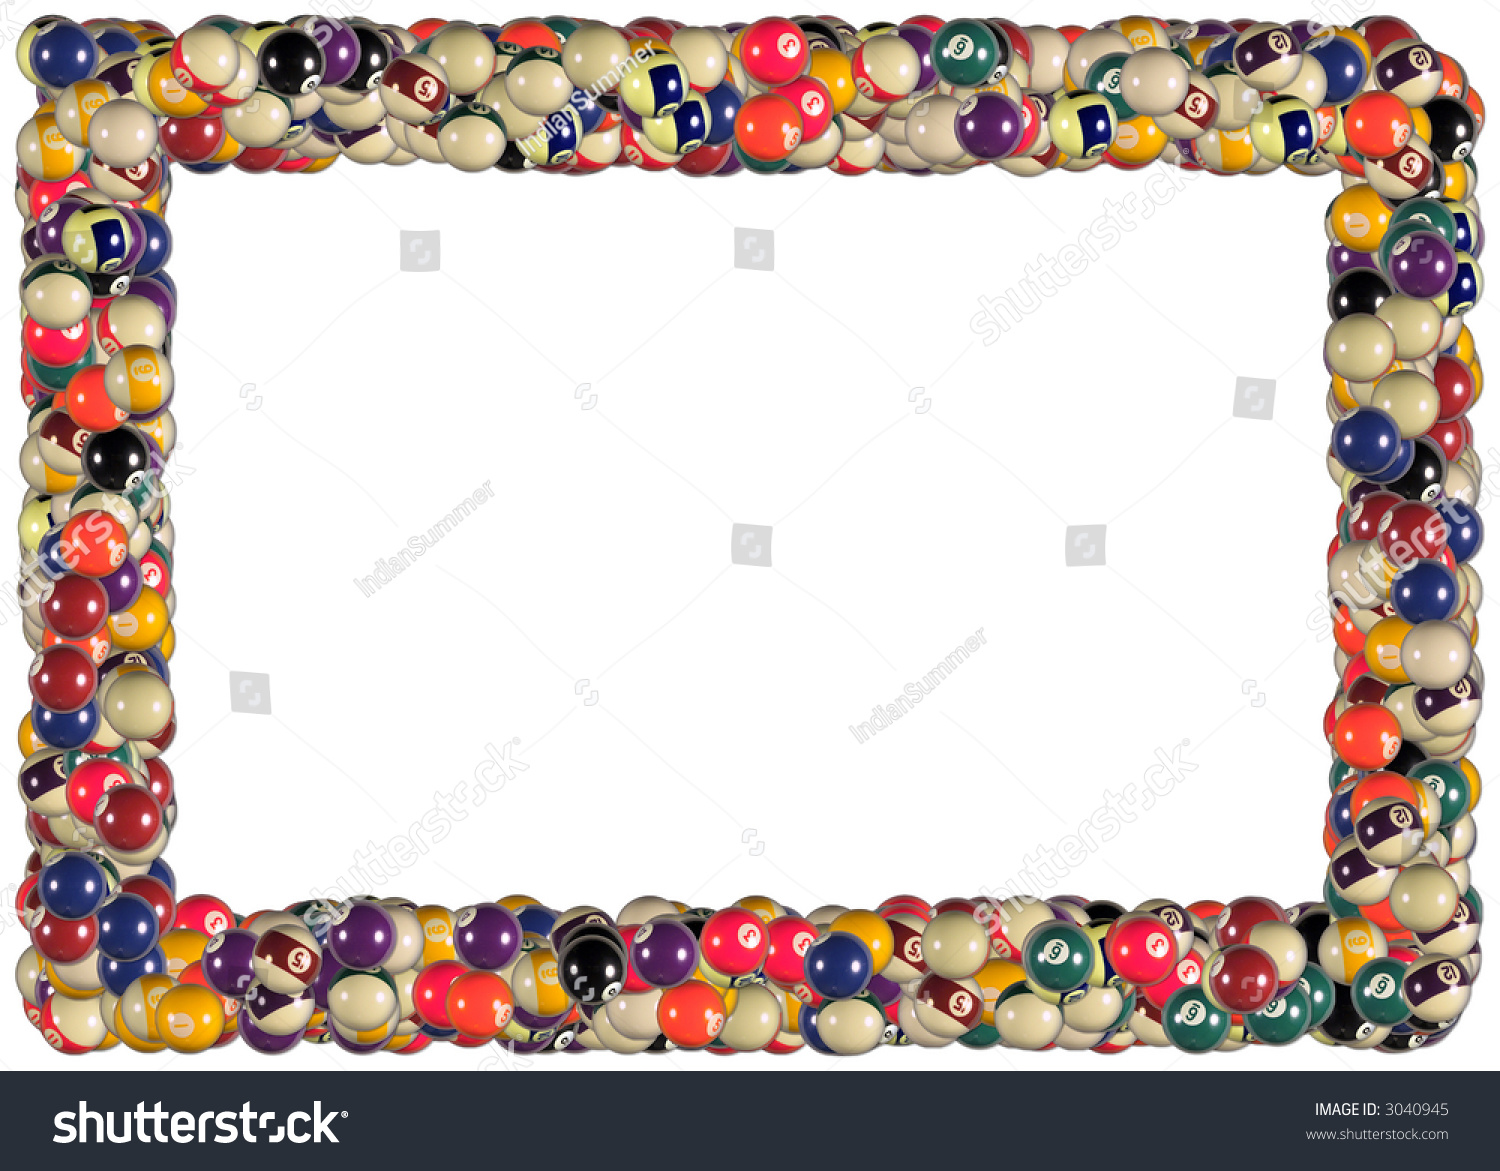 billiard balls frame from the sports games frames series